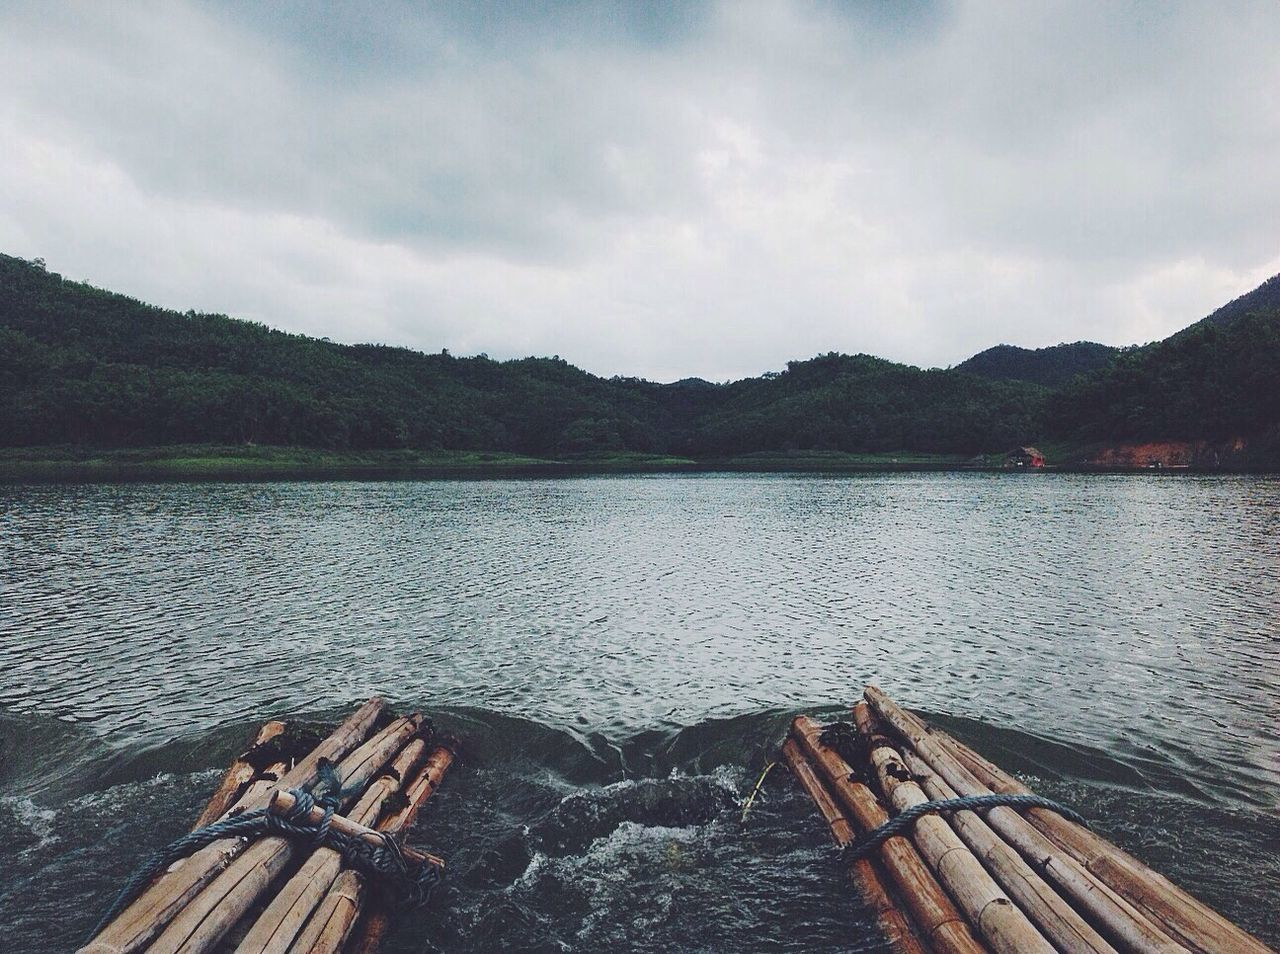 water, wood - material, nature, no people, nautical vessel, tranquility, mountain, outdoors, scenics, day, lake, bamboo - material, tranquil scene, wooden raft, transportation, beauty in nature, sky, raft